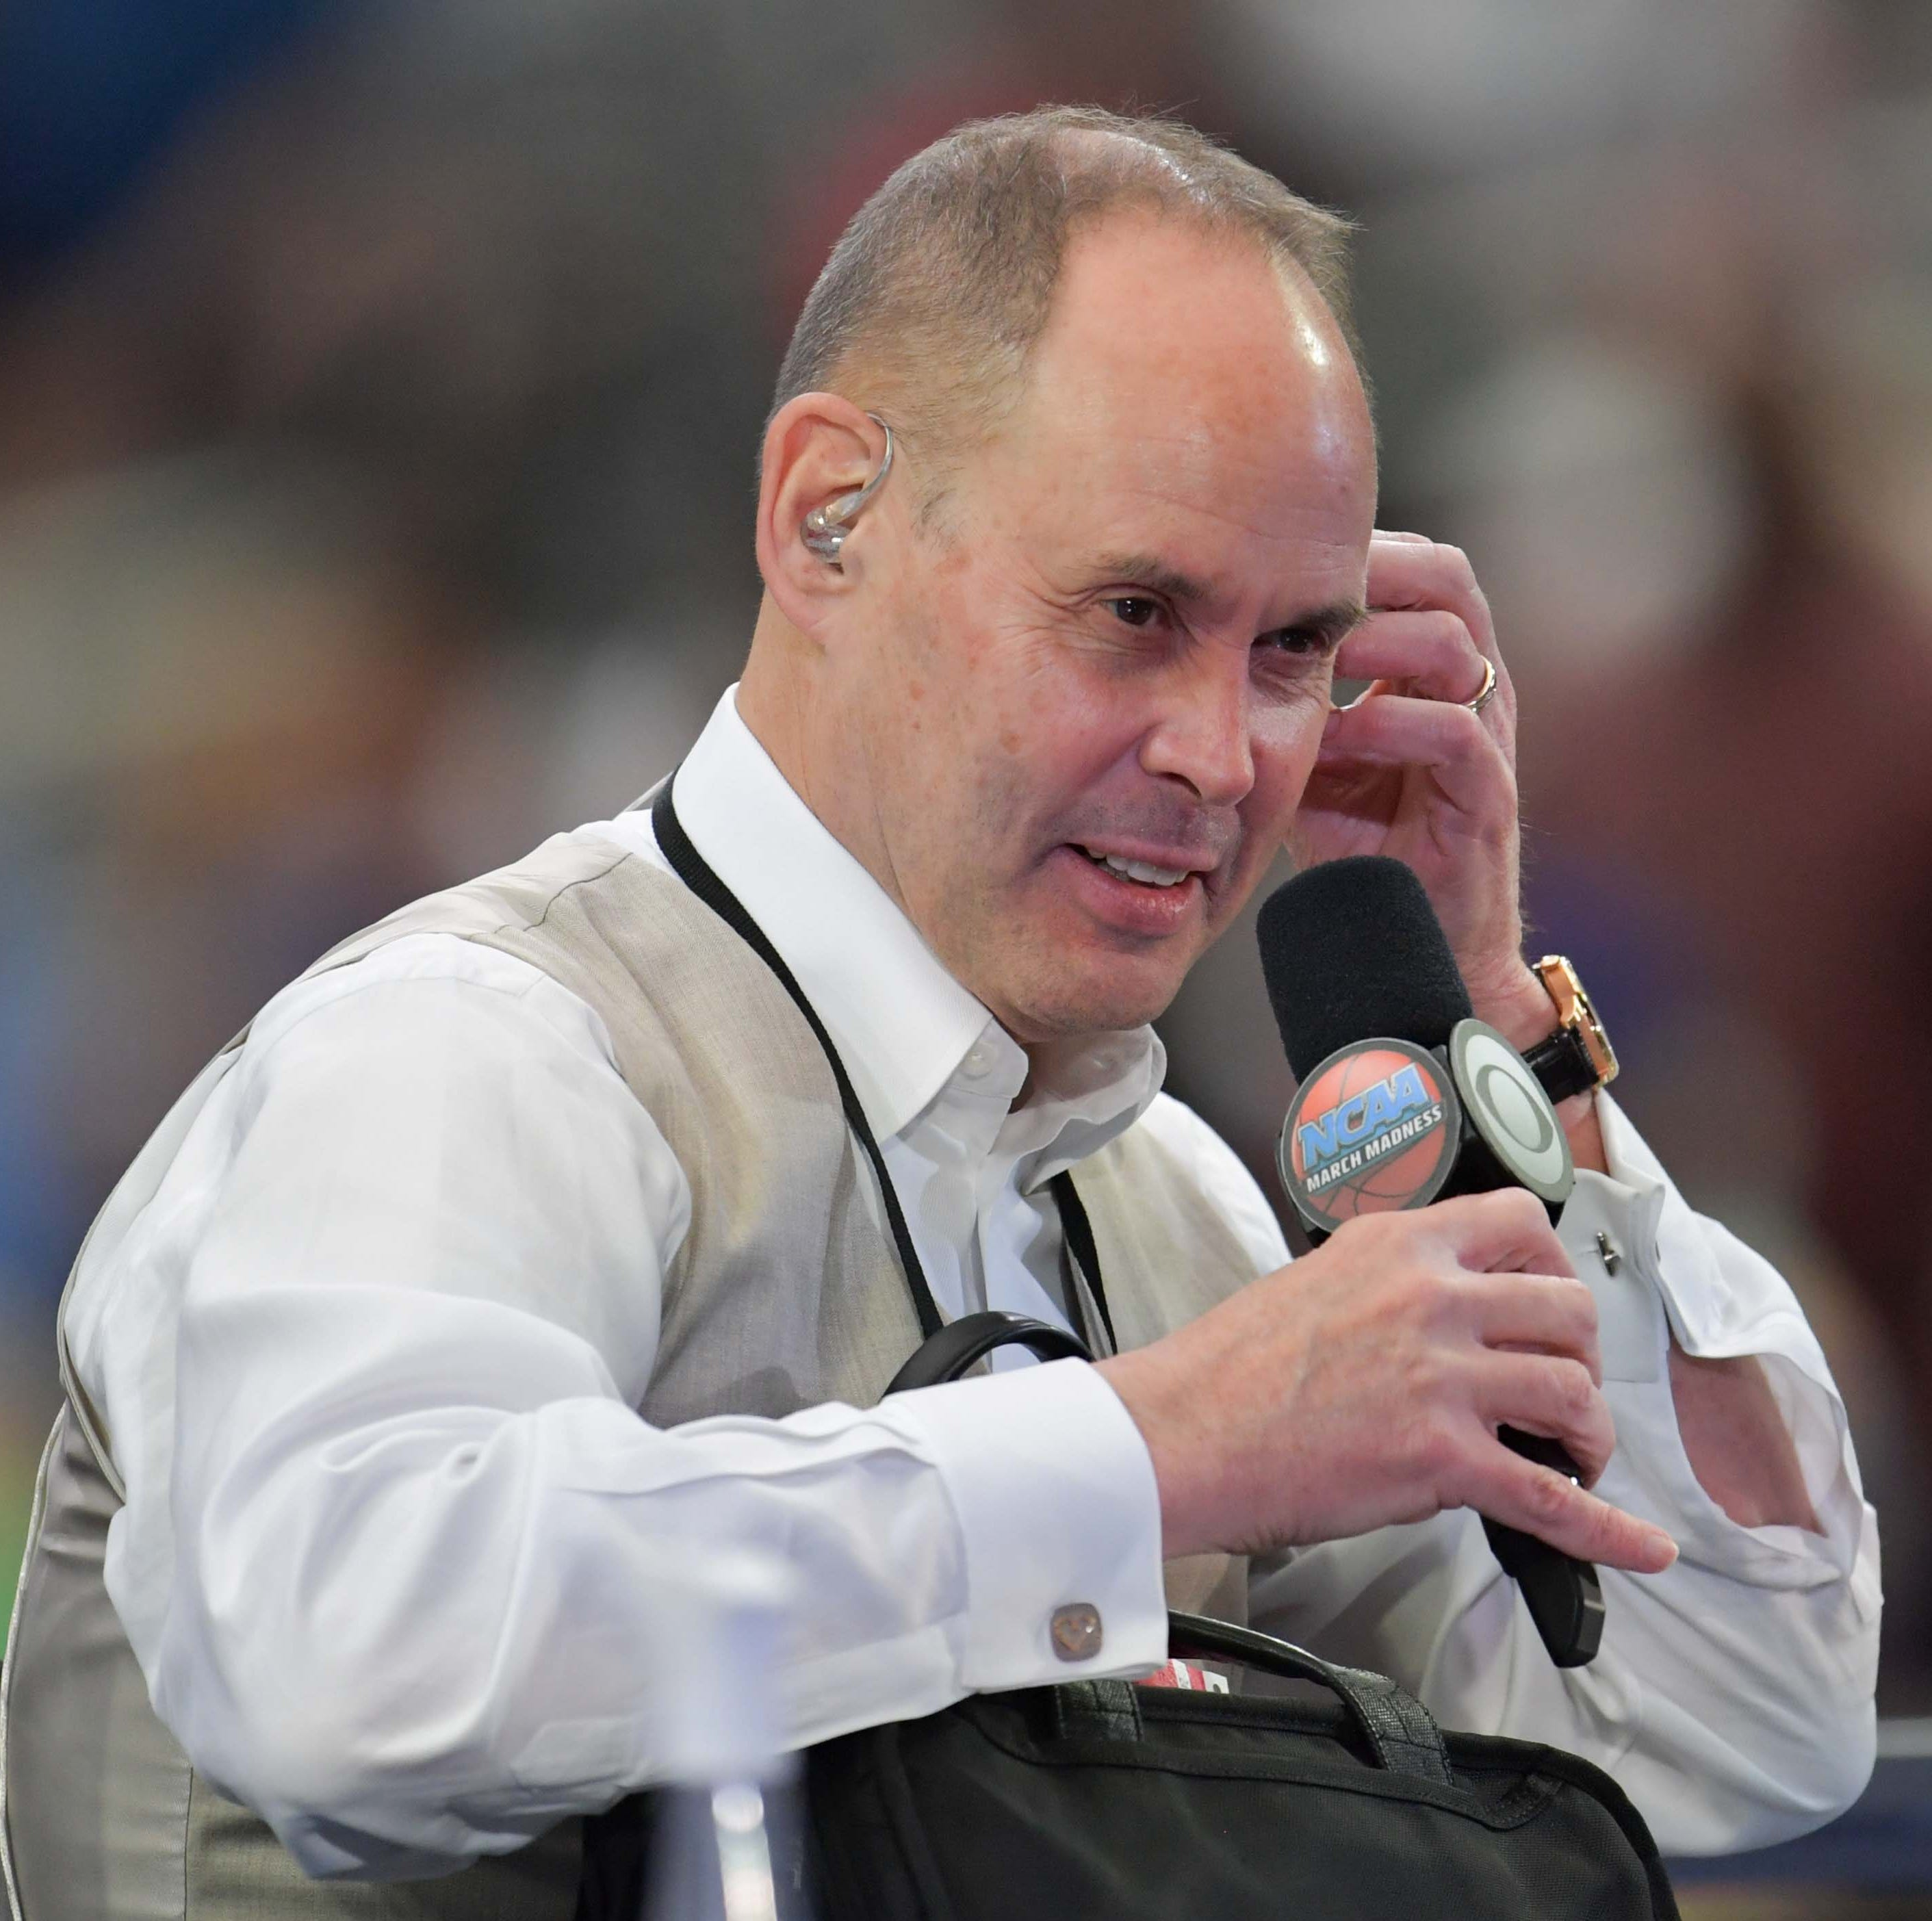 Milwaukee-born broadcaster Ernie Johnson will return to see his old stomping grounds as part of traveling TNT studio show